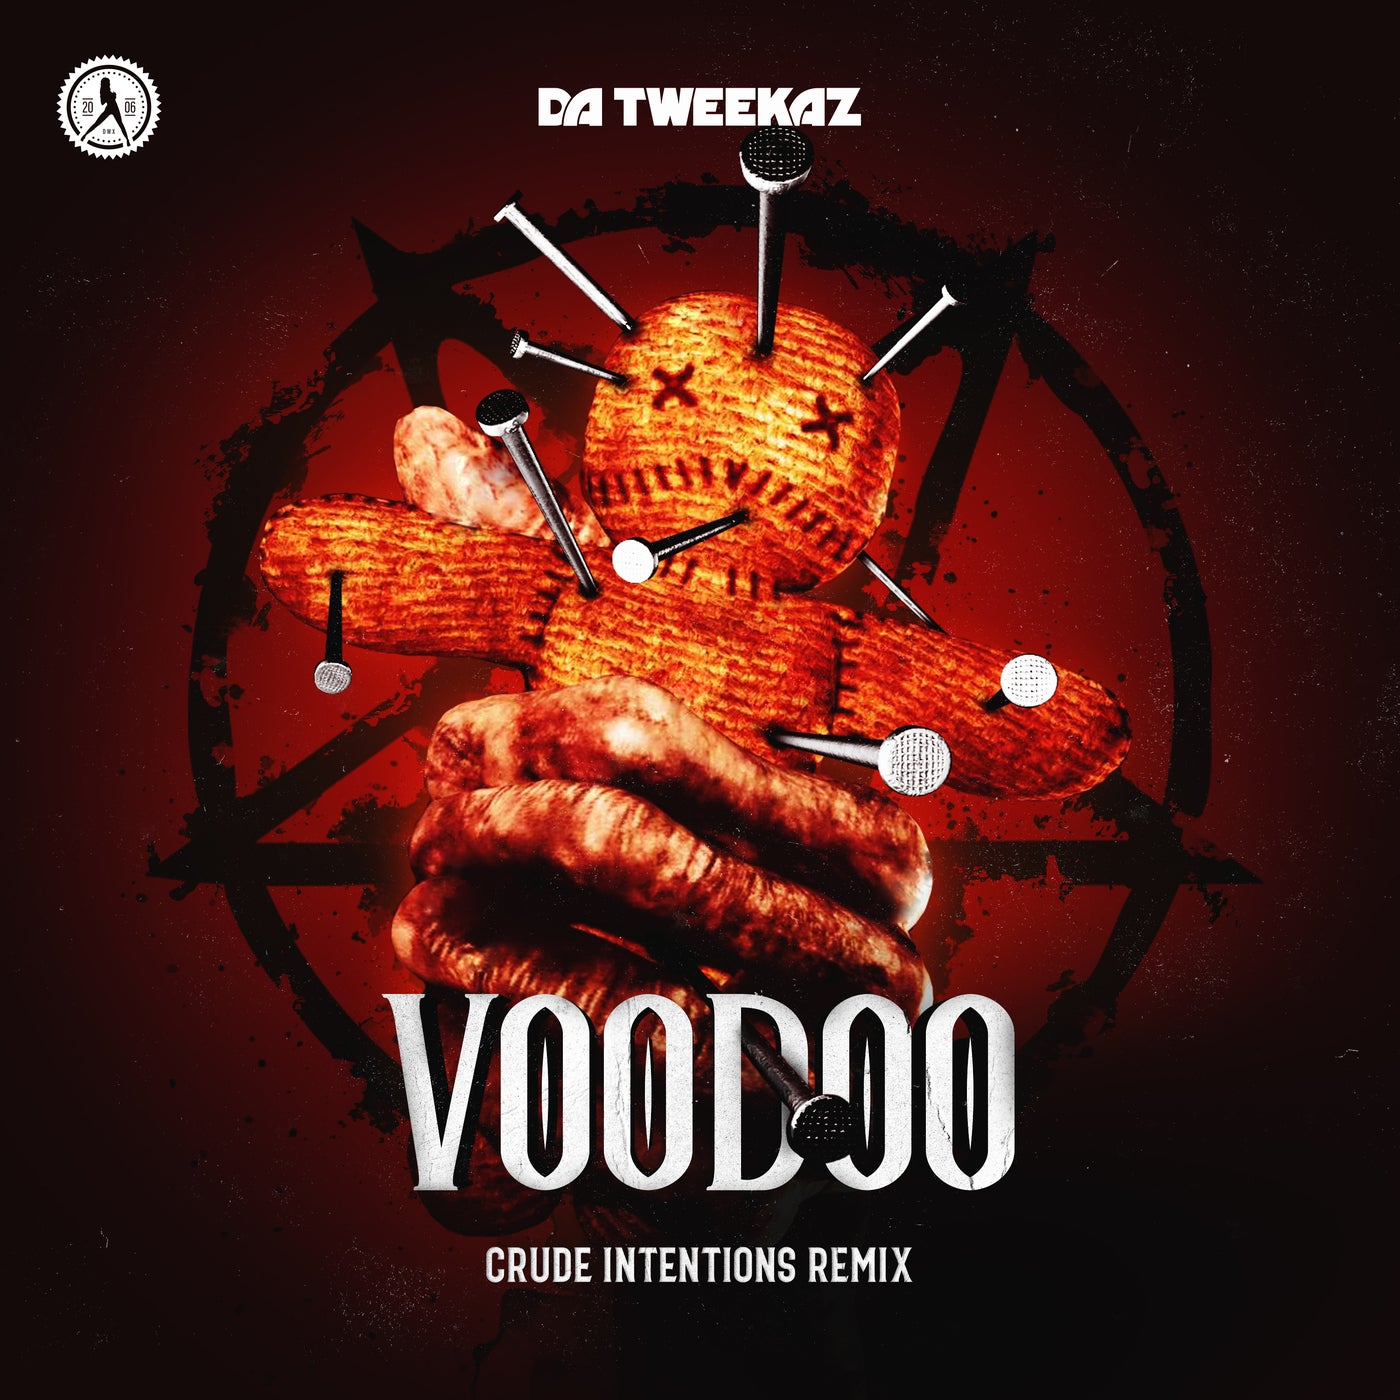 Voodoo (Crude Intentions Remix) (Extended Mix)